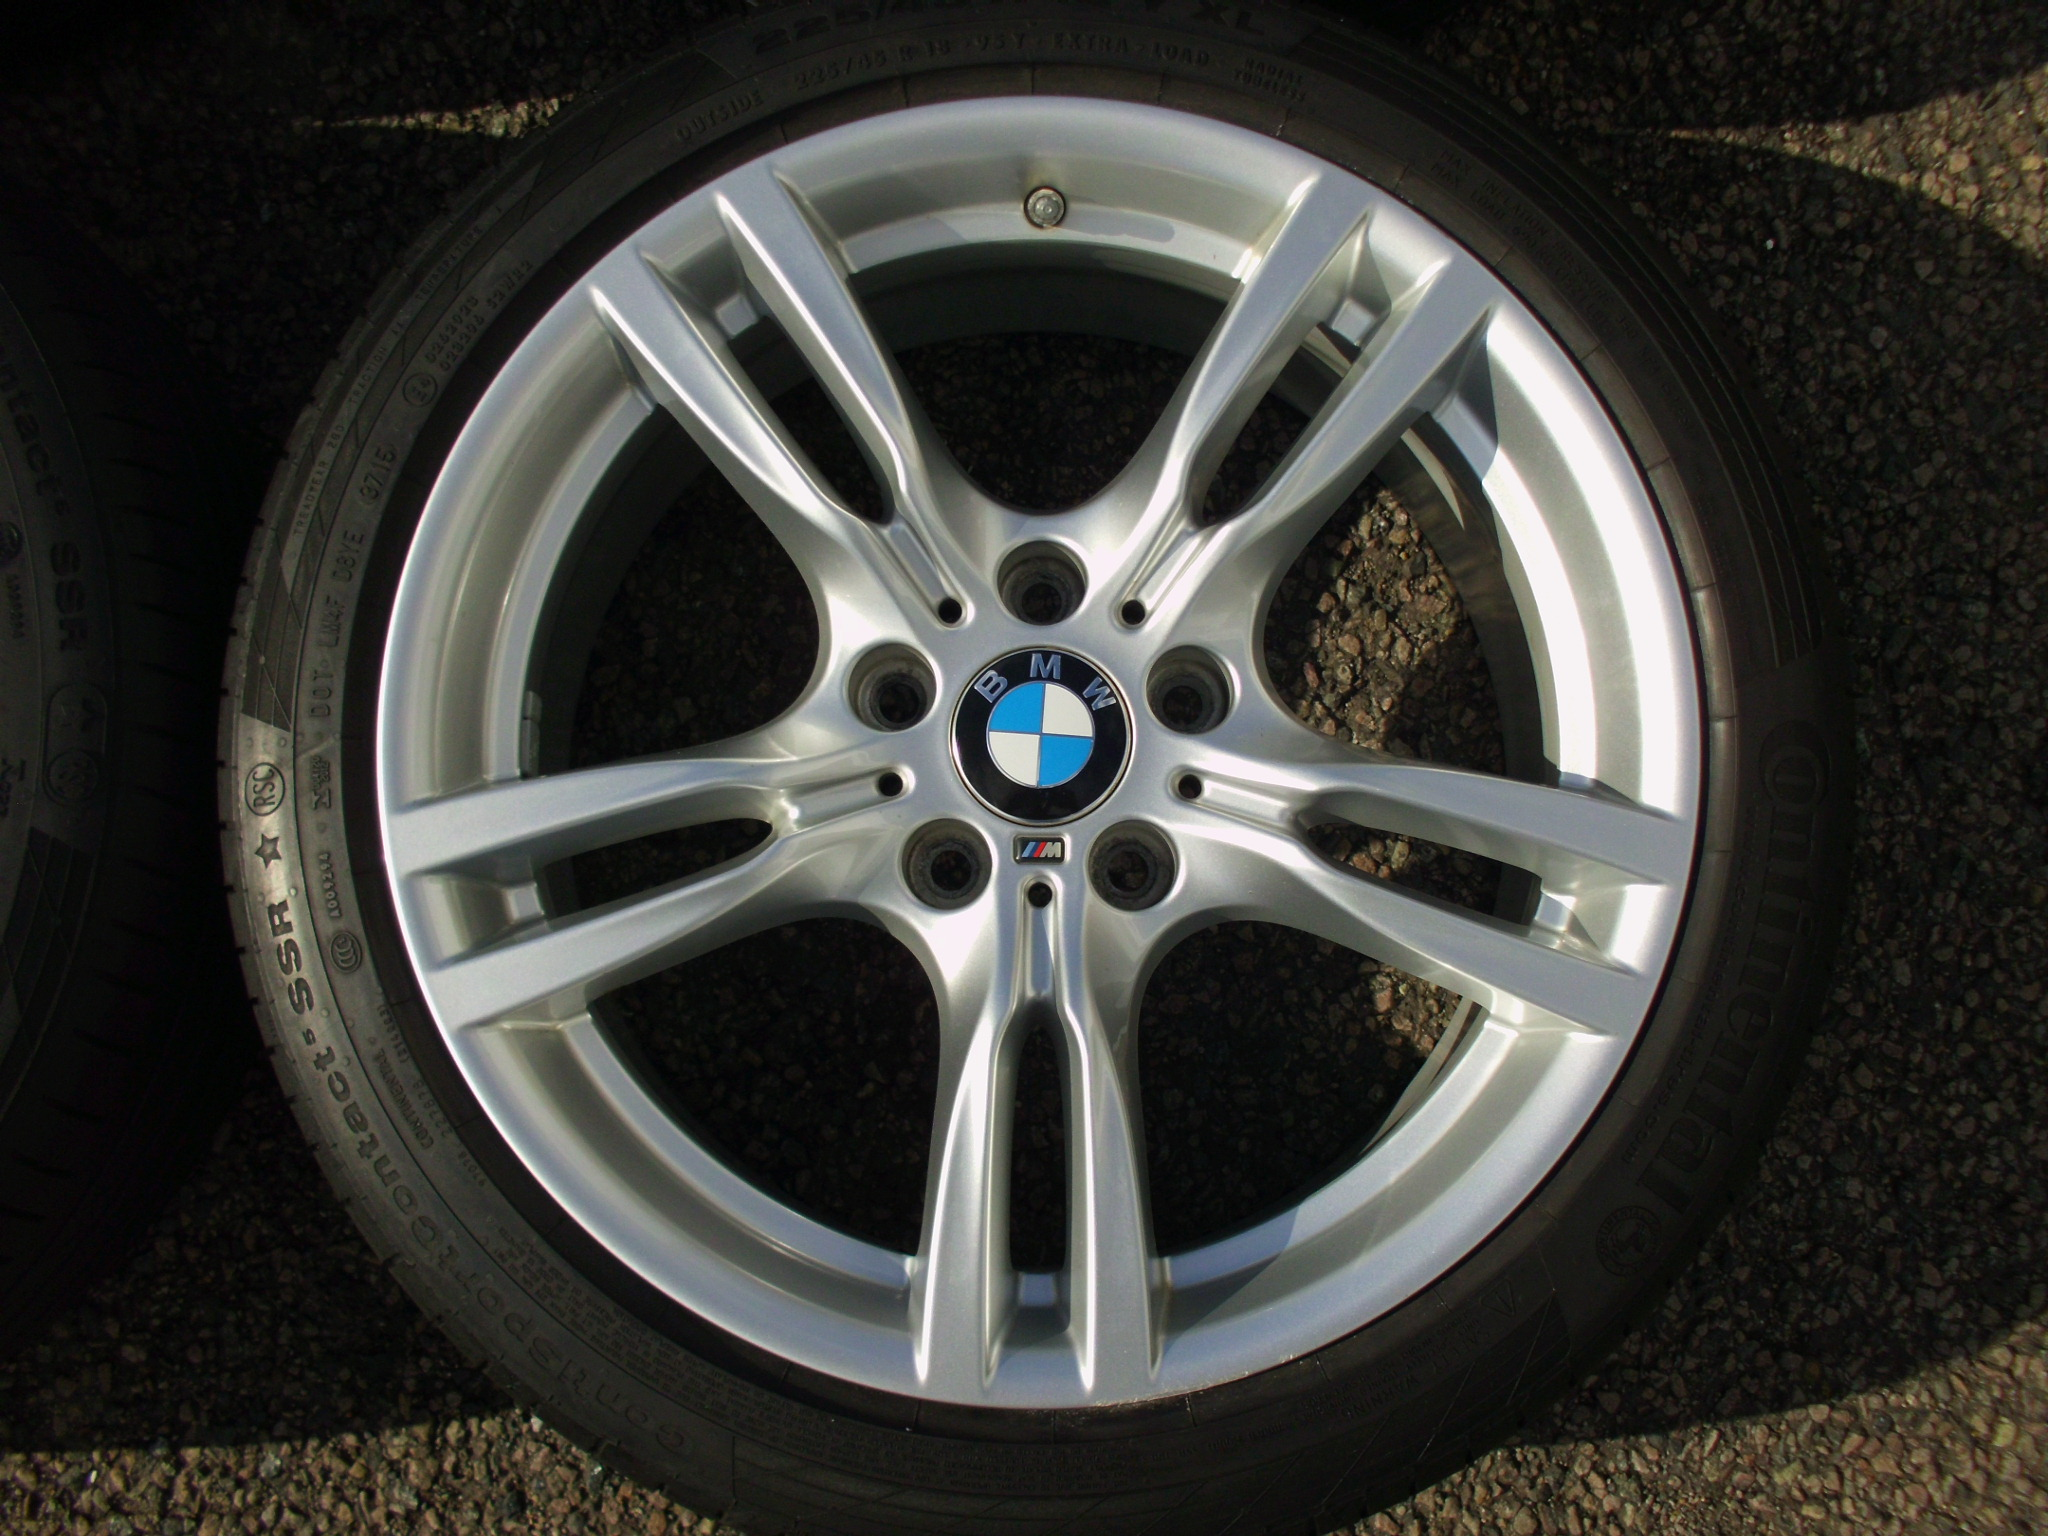 "USED 18"" GENUINE STYLE 400 M SPORT ALLOY WHEELS, WIDER REARS,VGC, INC GOOD CONTINENTAL RUNFLAT TYRES + TPMS"